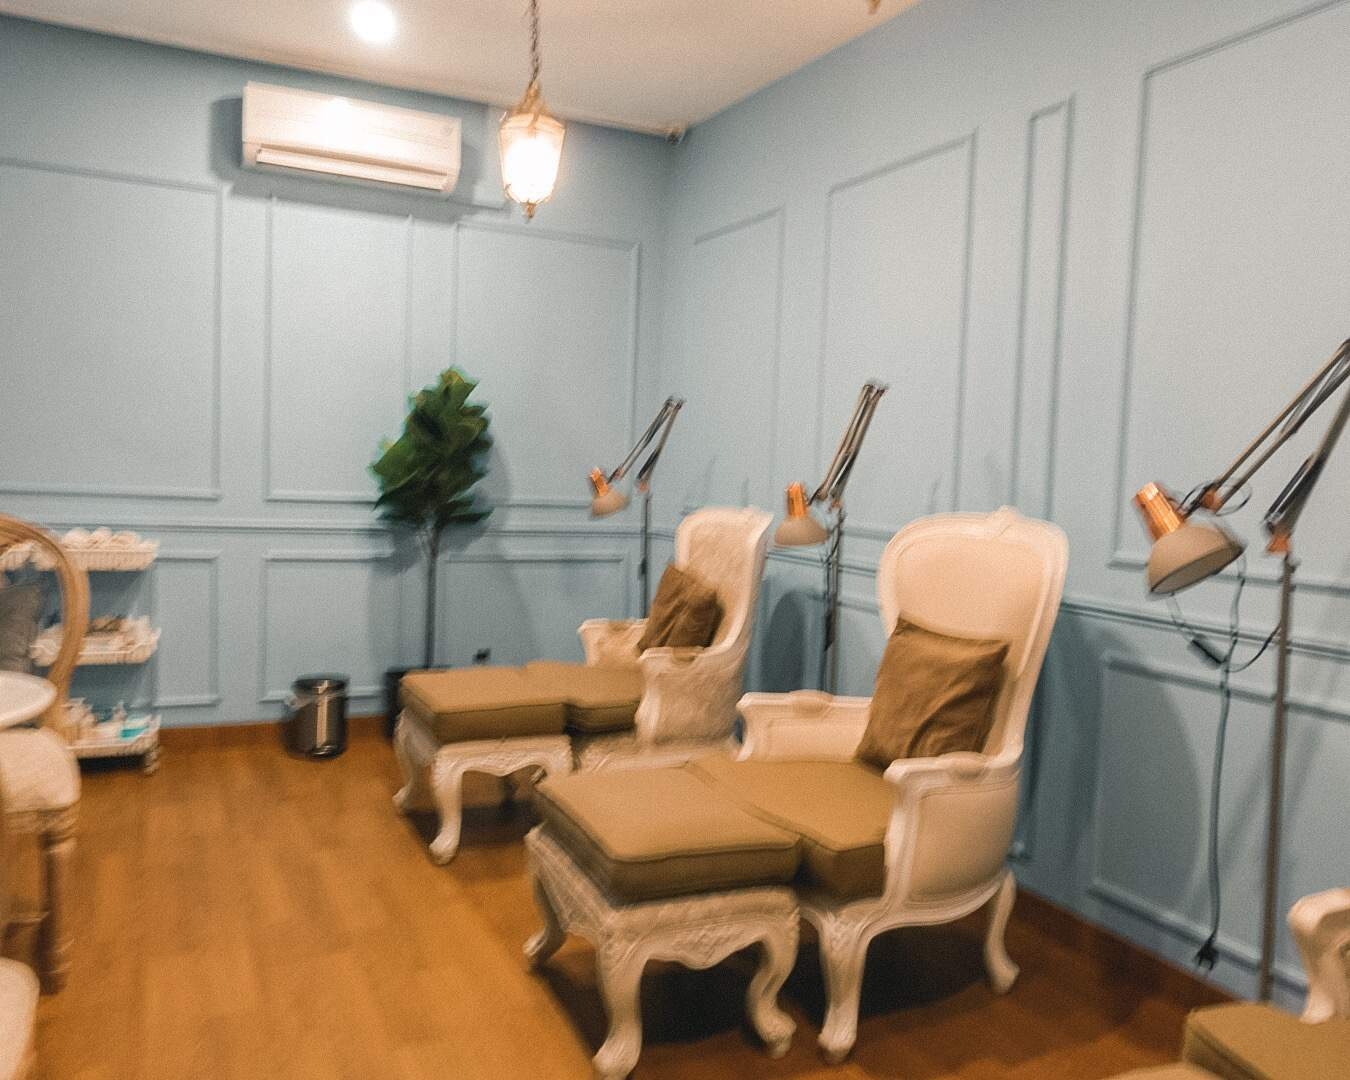 pavilion beauty salon jakarta cempaka putih travelbeib review 2018